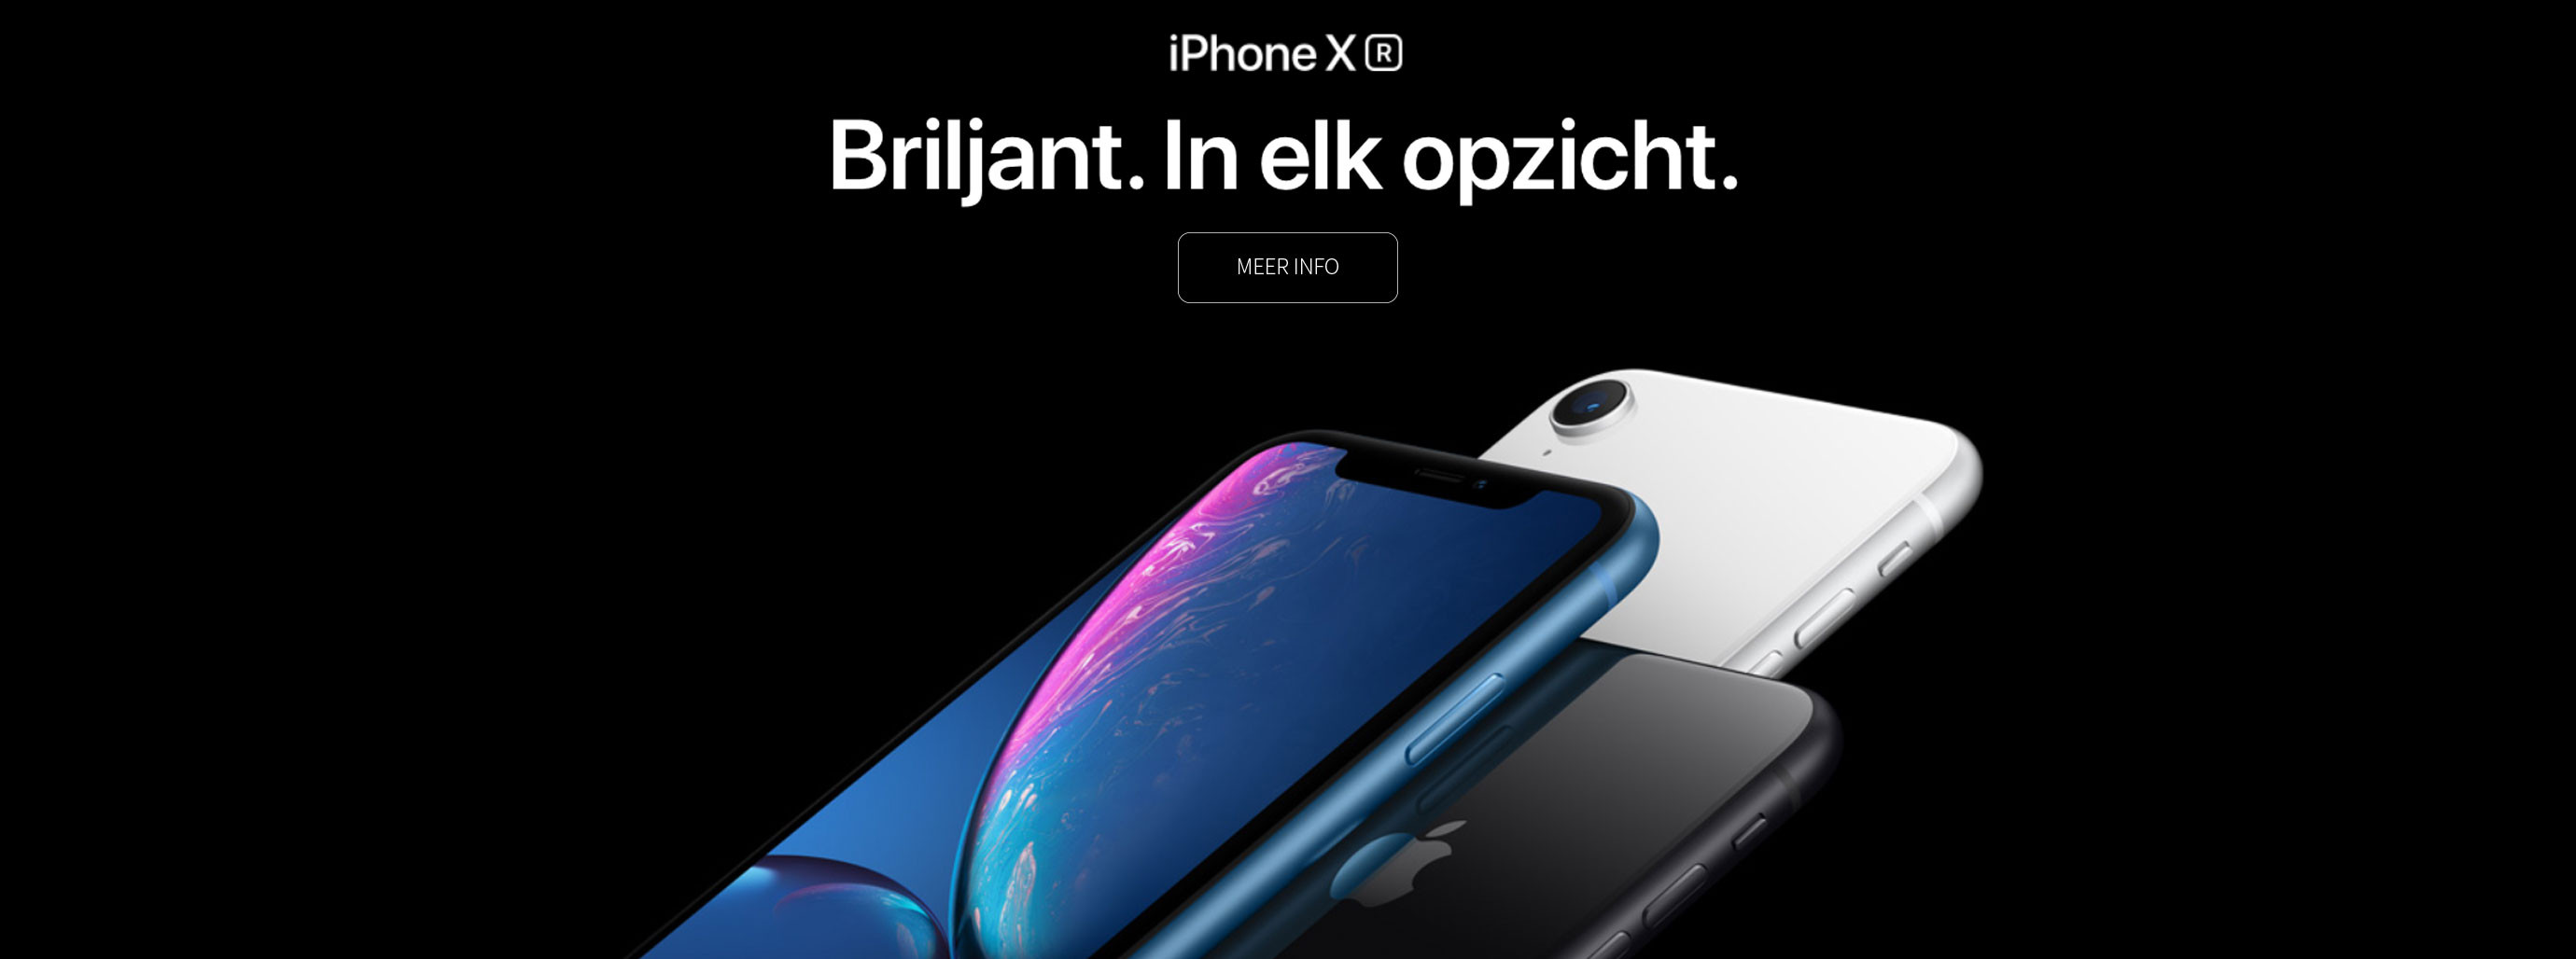 iPhoneXr_overview.jpg